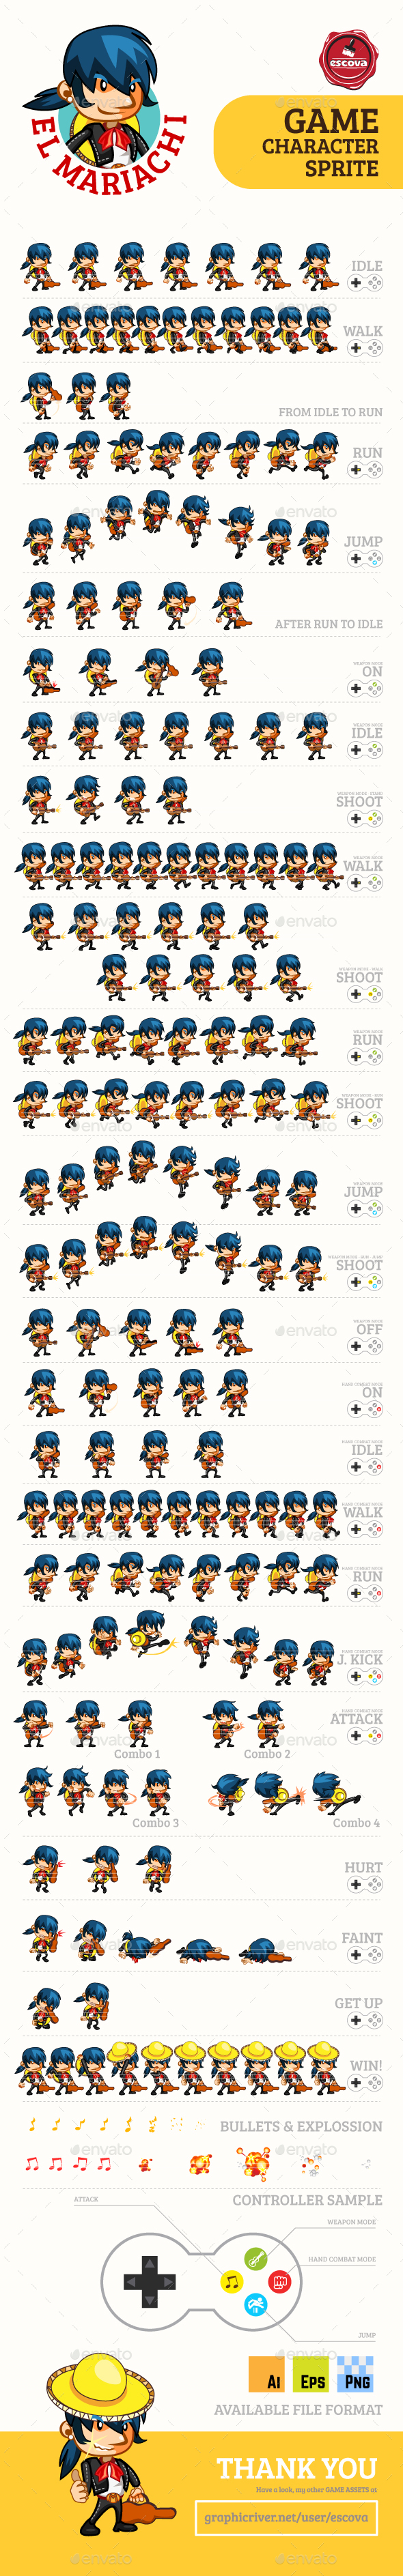 El Mariachi Game Character Sprites - Sprites Game Assets